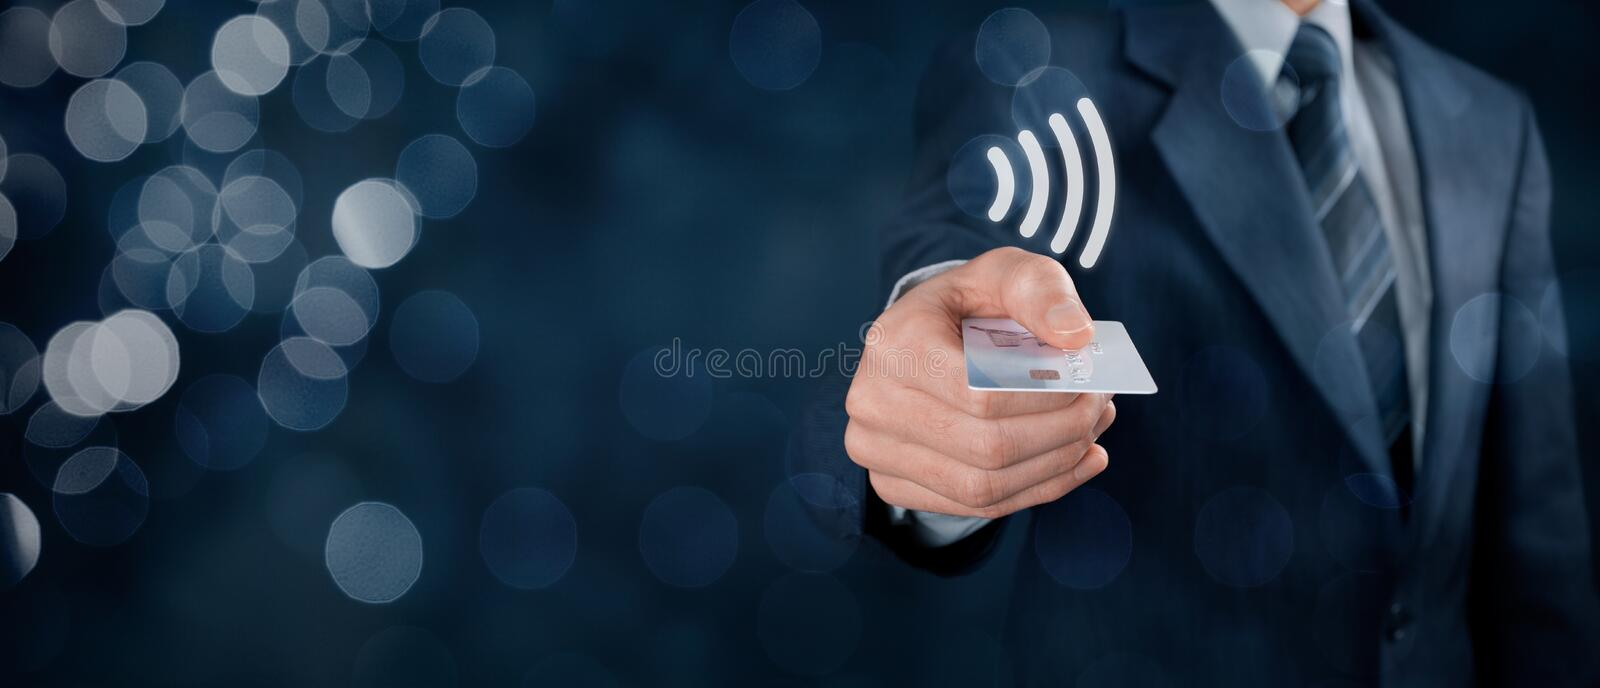 Contactless payment. Concept. Man pay with contactless credit card, virtual contactless symbol above card. Wide banner composition with bokeh in background royalty free stock photos